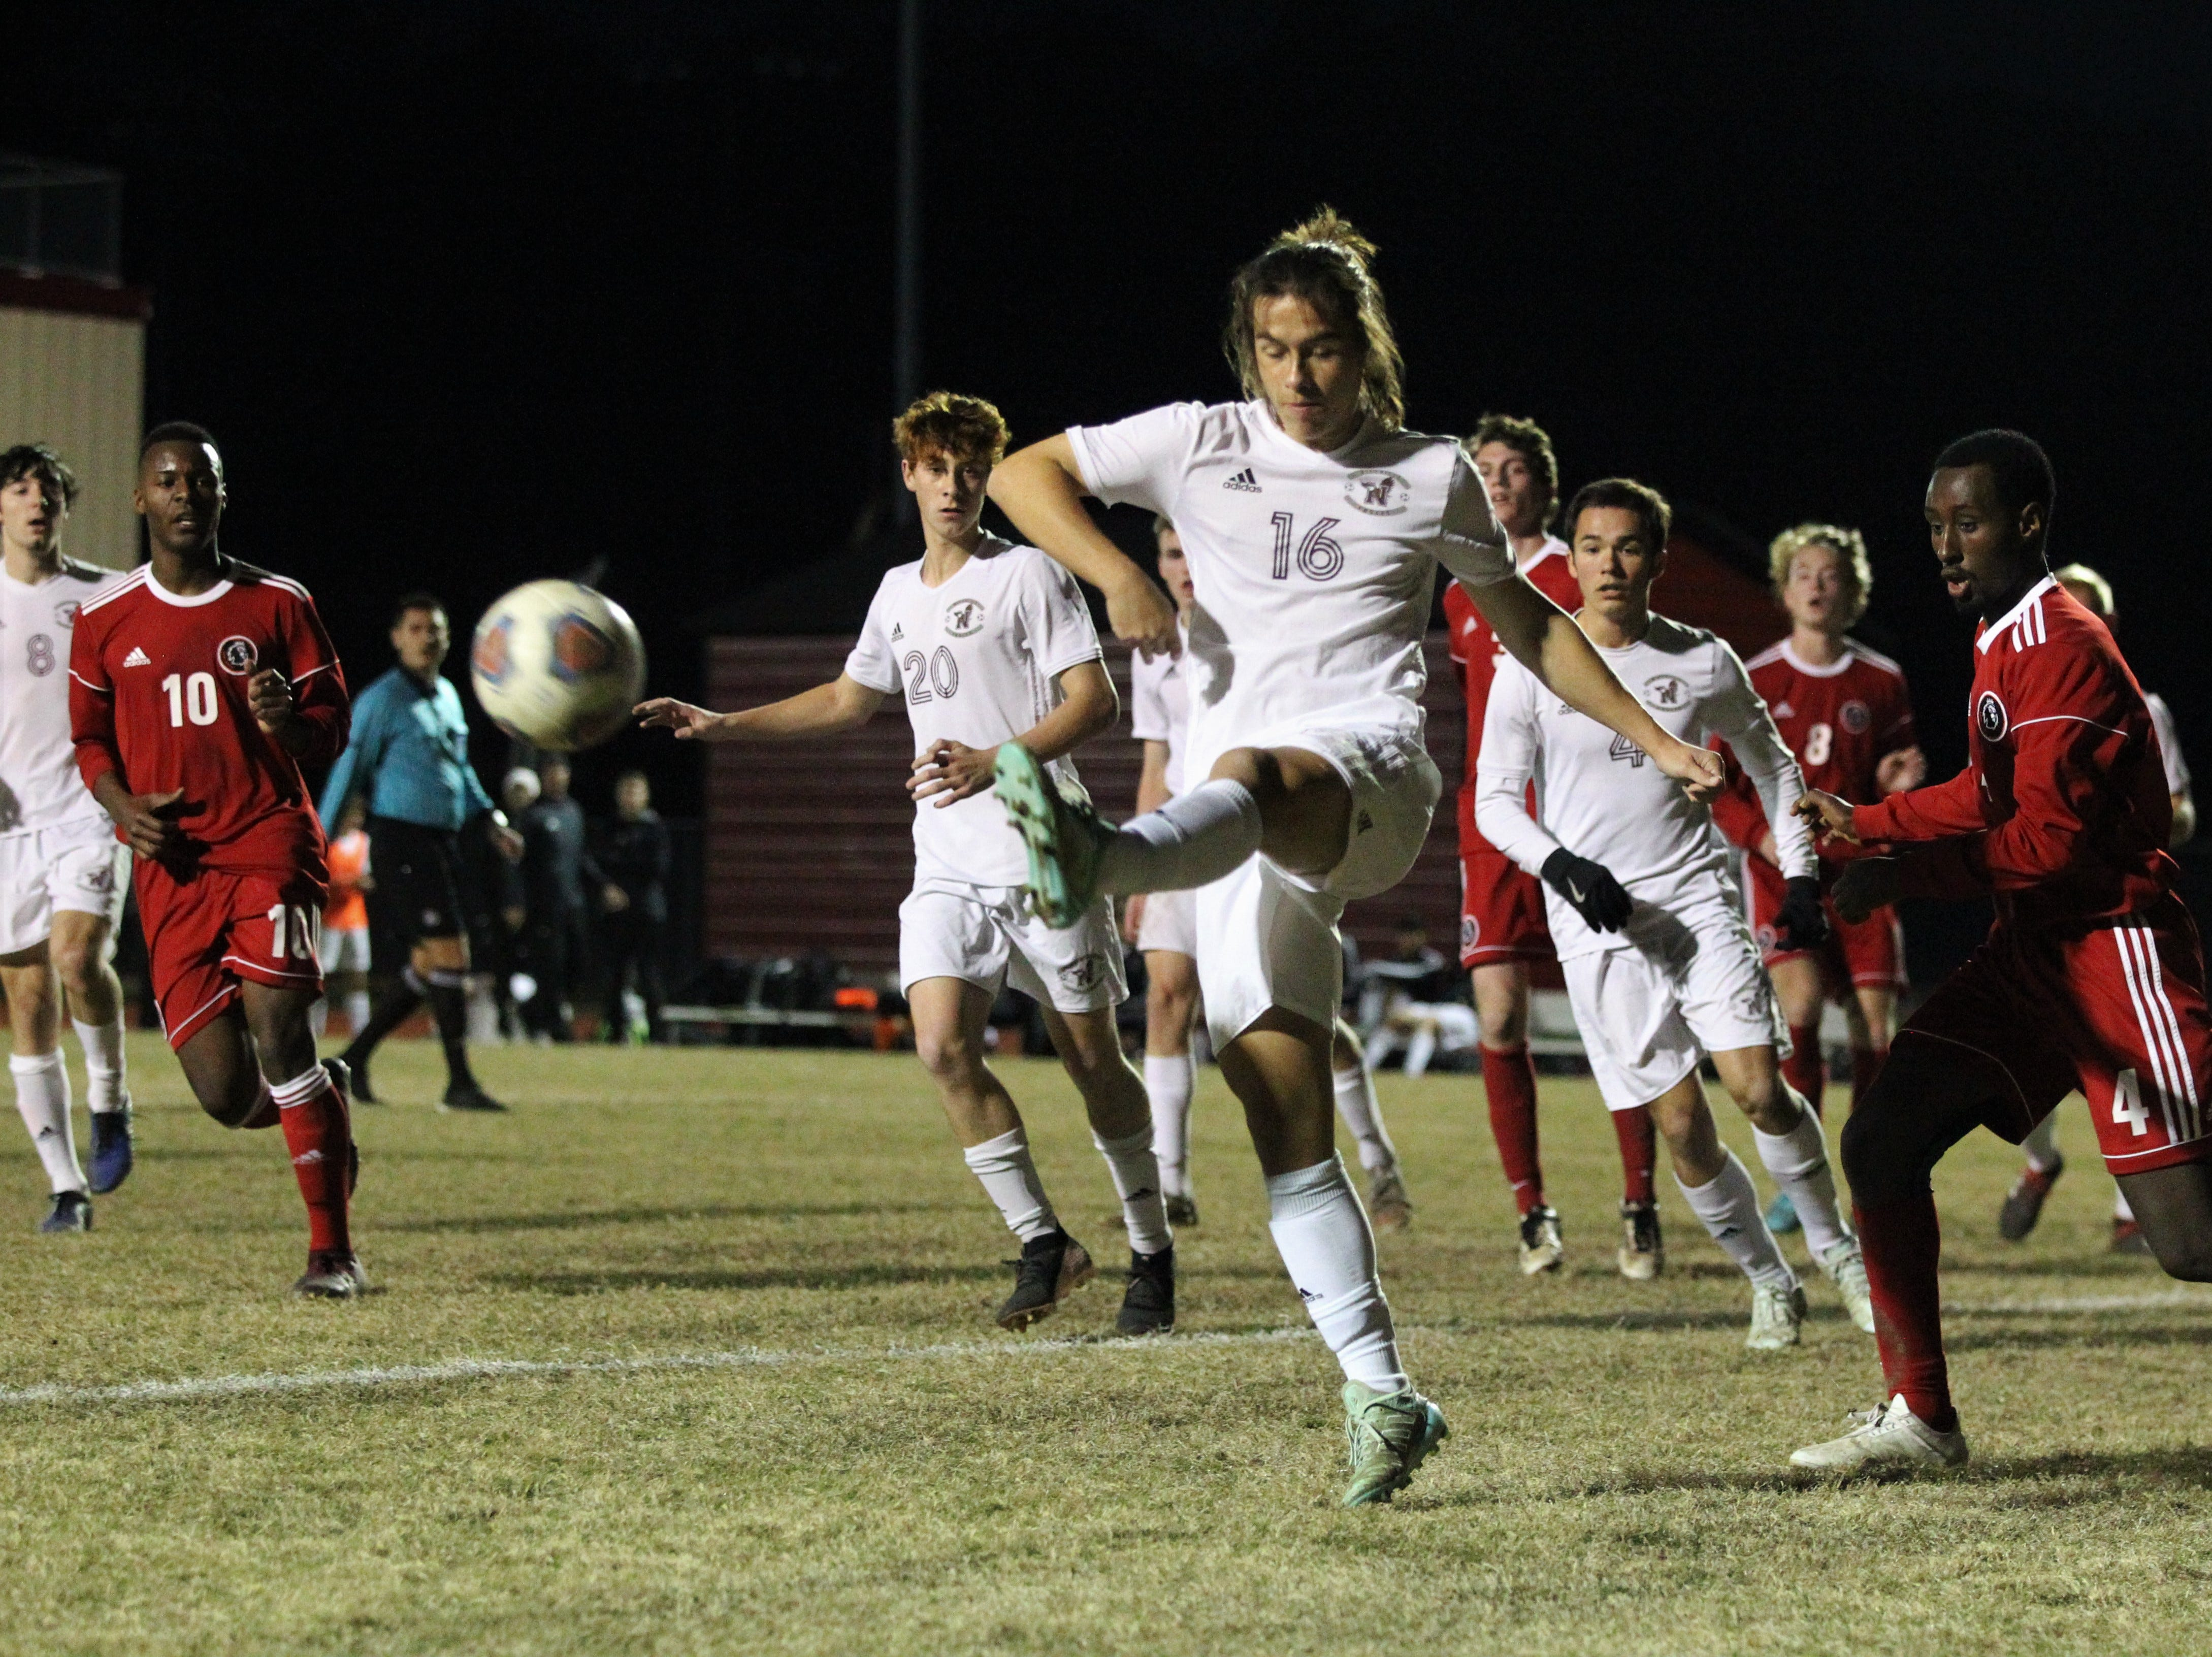 Niceville's Travis Sherwin clears a corner kick as the Leon's boys soccer team beat Niceville 1-0 in a Region 1-4A semifinal on Feb. 9, 2019.